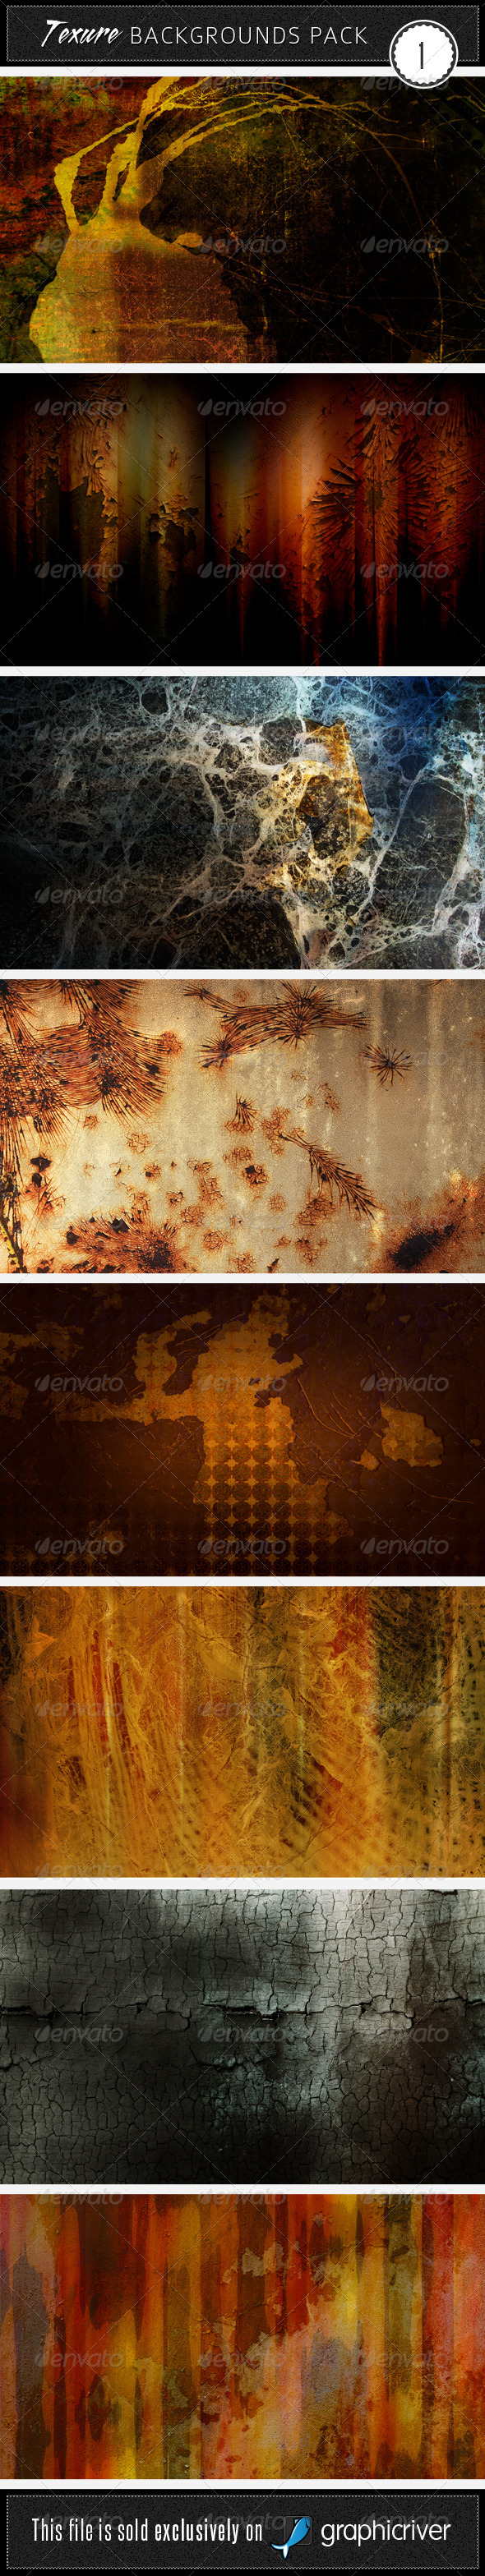 Texture Backgrounds Pack 1 - Miscellaneous Textures